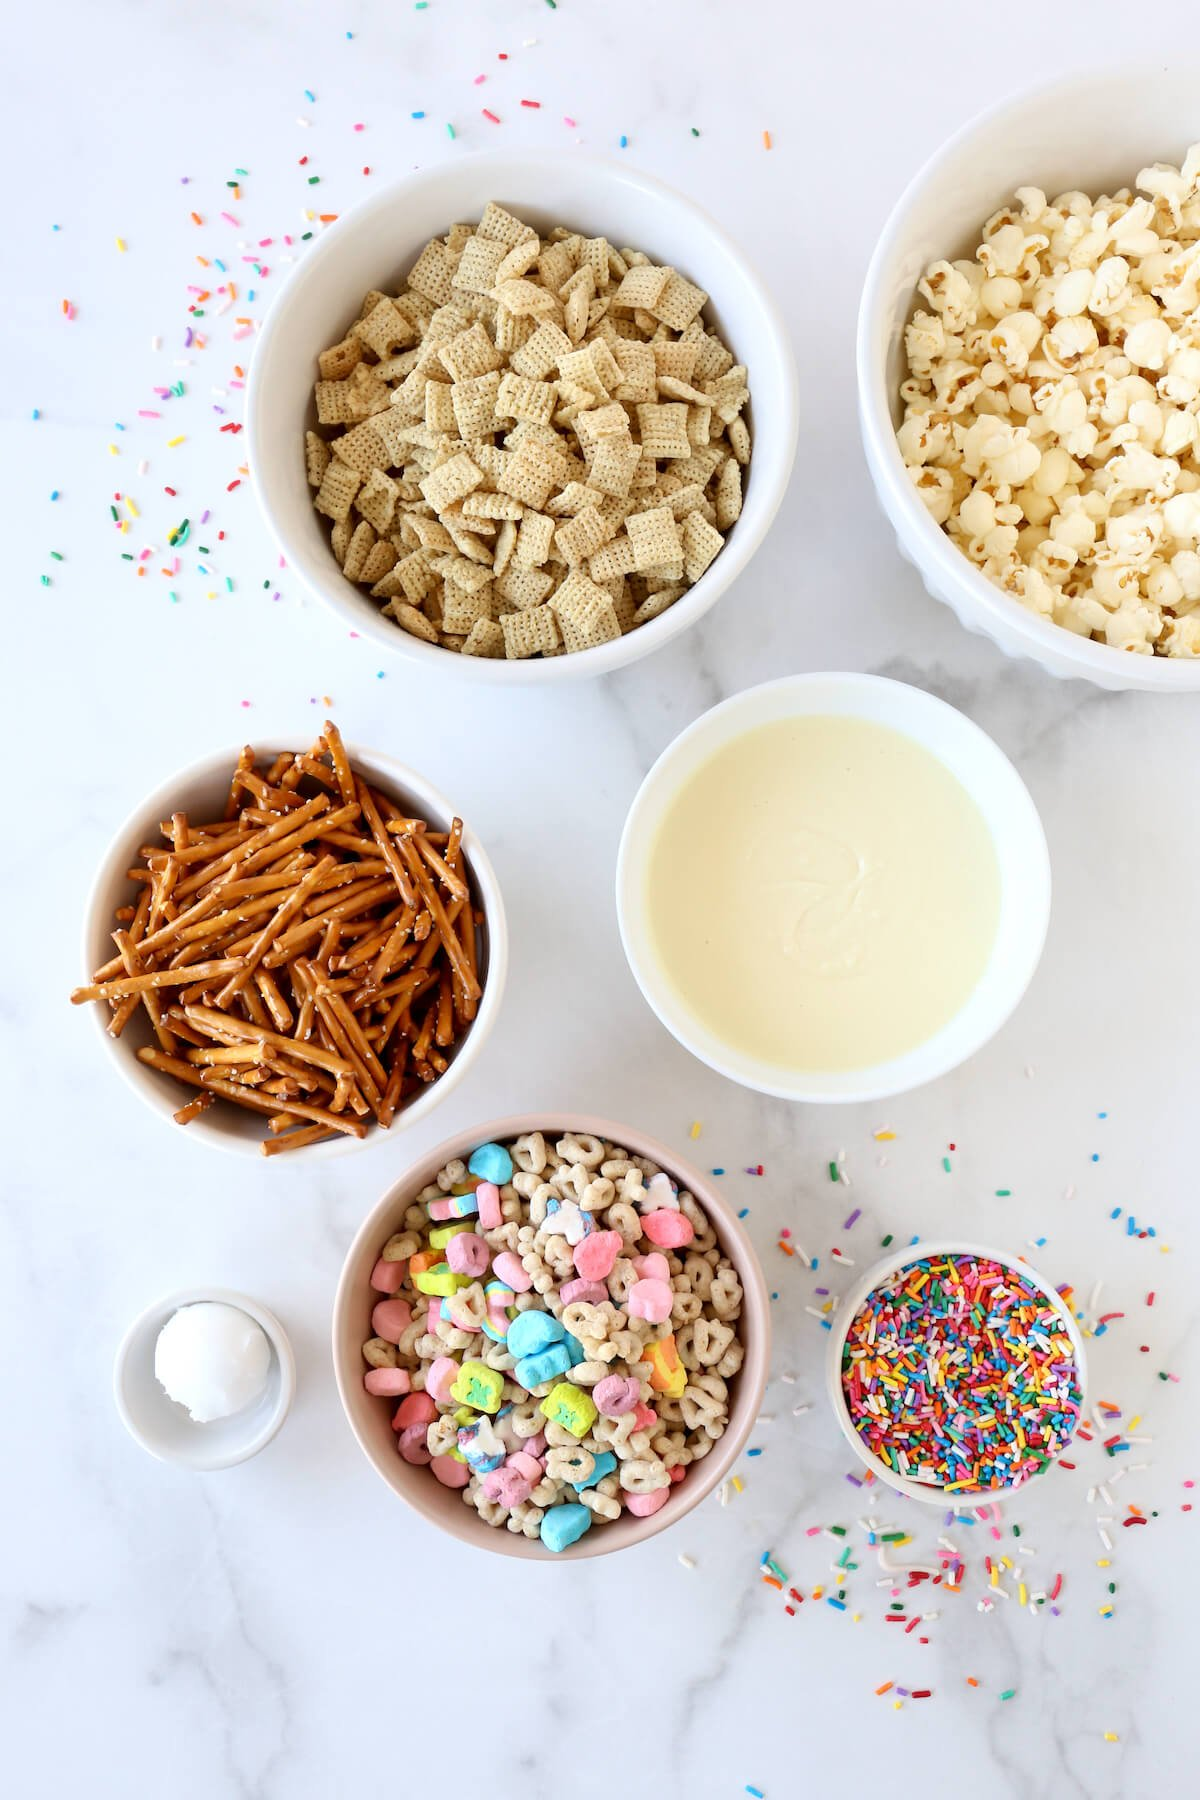 A bowl of chex cereal, popcorn, pretzel sticks, white chocolate, lucky charm cereal and sprinkles.